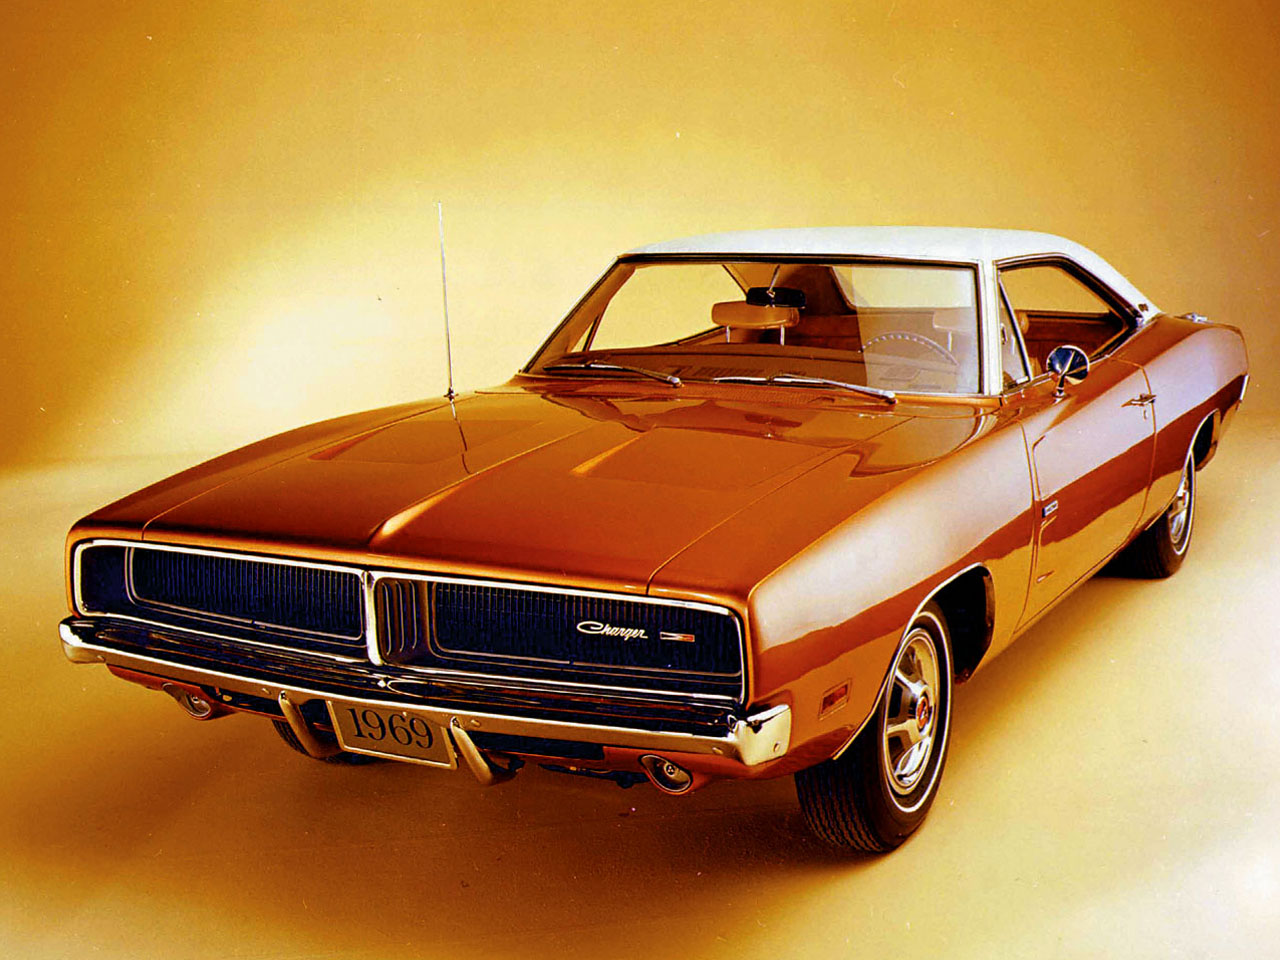 1969 Dodge Charger Wallpaper 1280x960